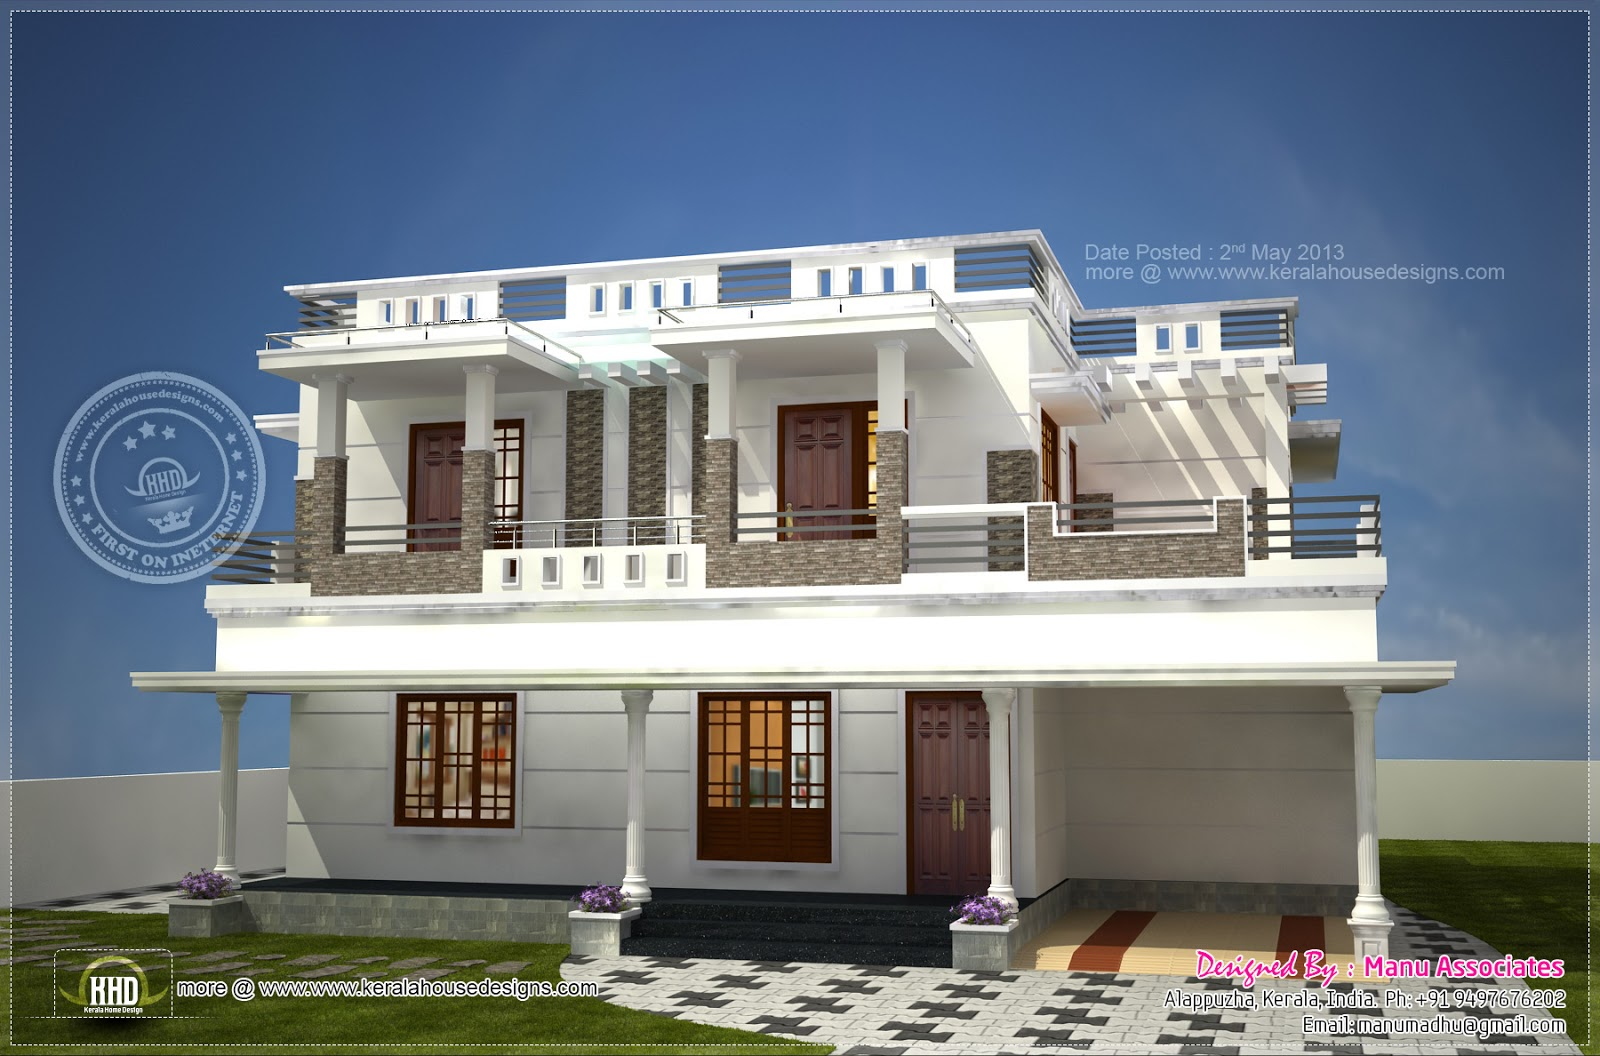 Modern home design in alappuzha kerala house design plans for Home designs 2015